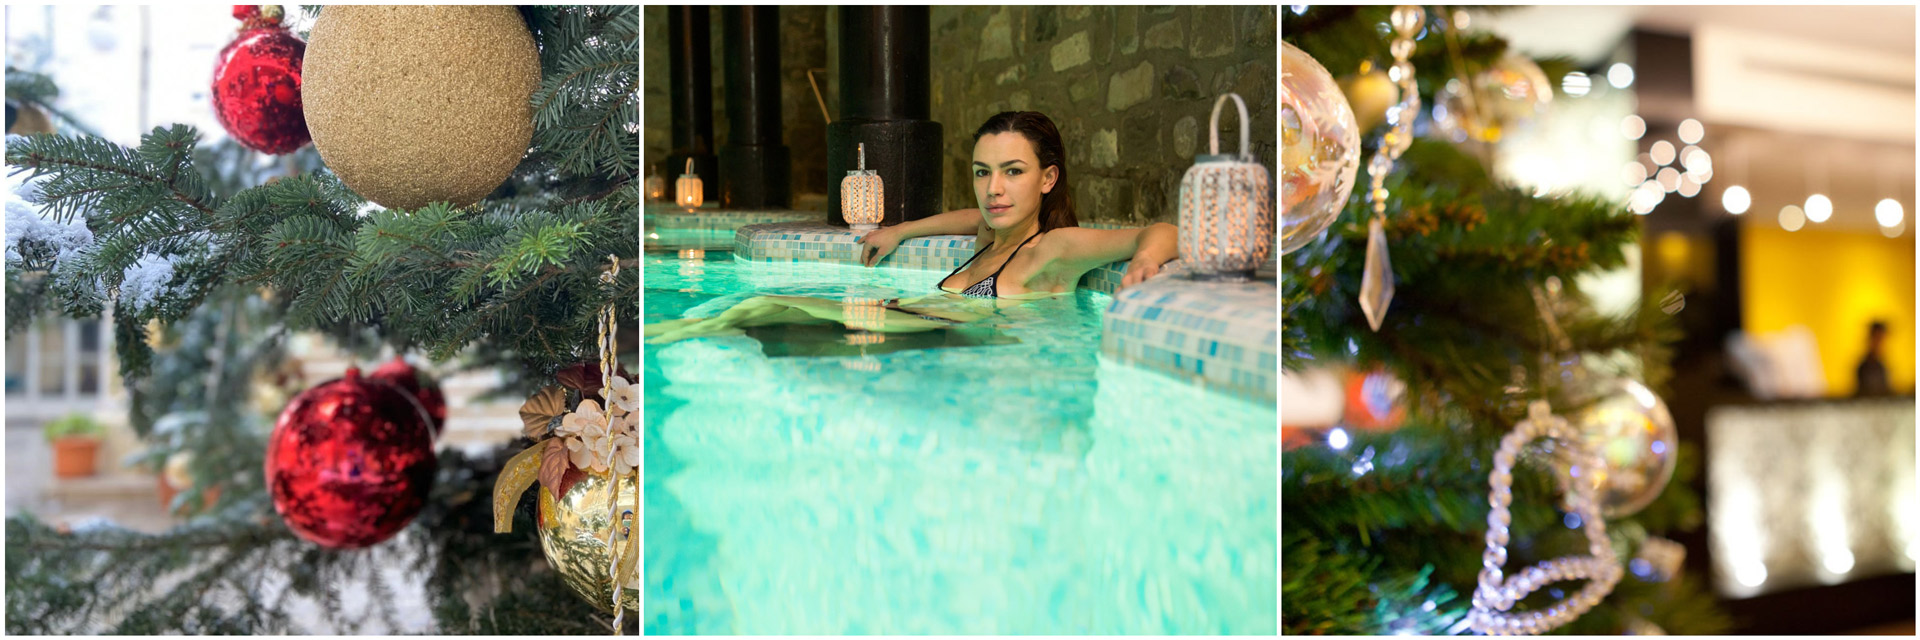 Gift-SPA-Voucher-Natale-Helvetia-Thermal-SPA